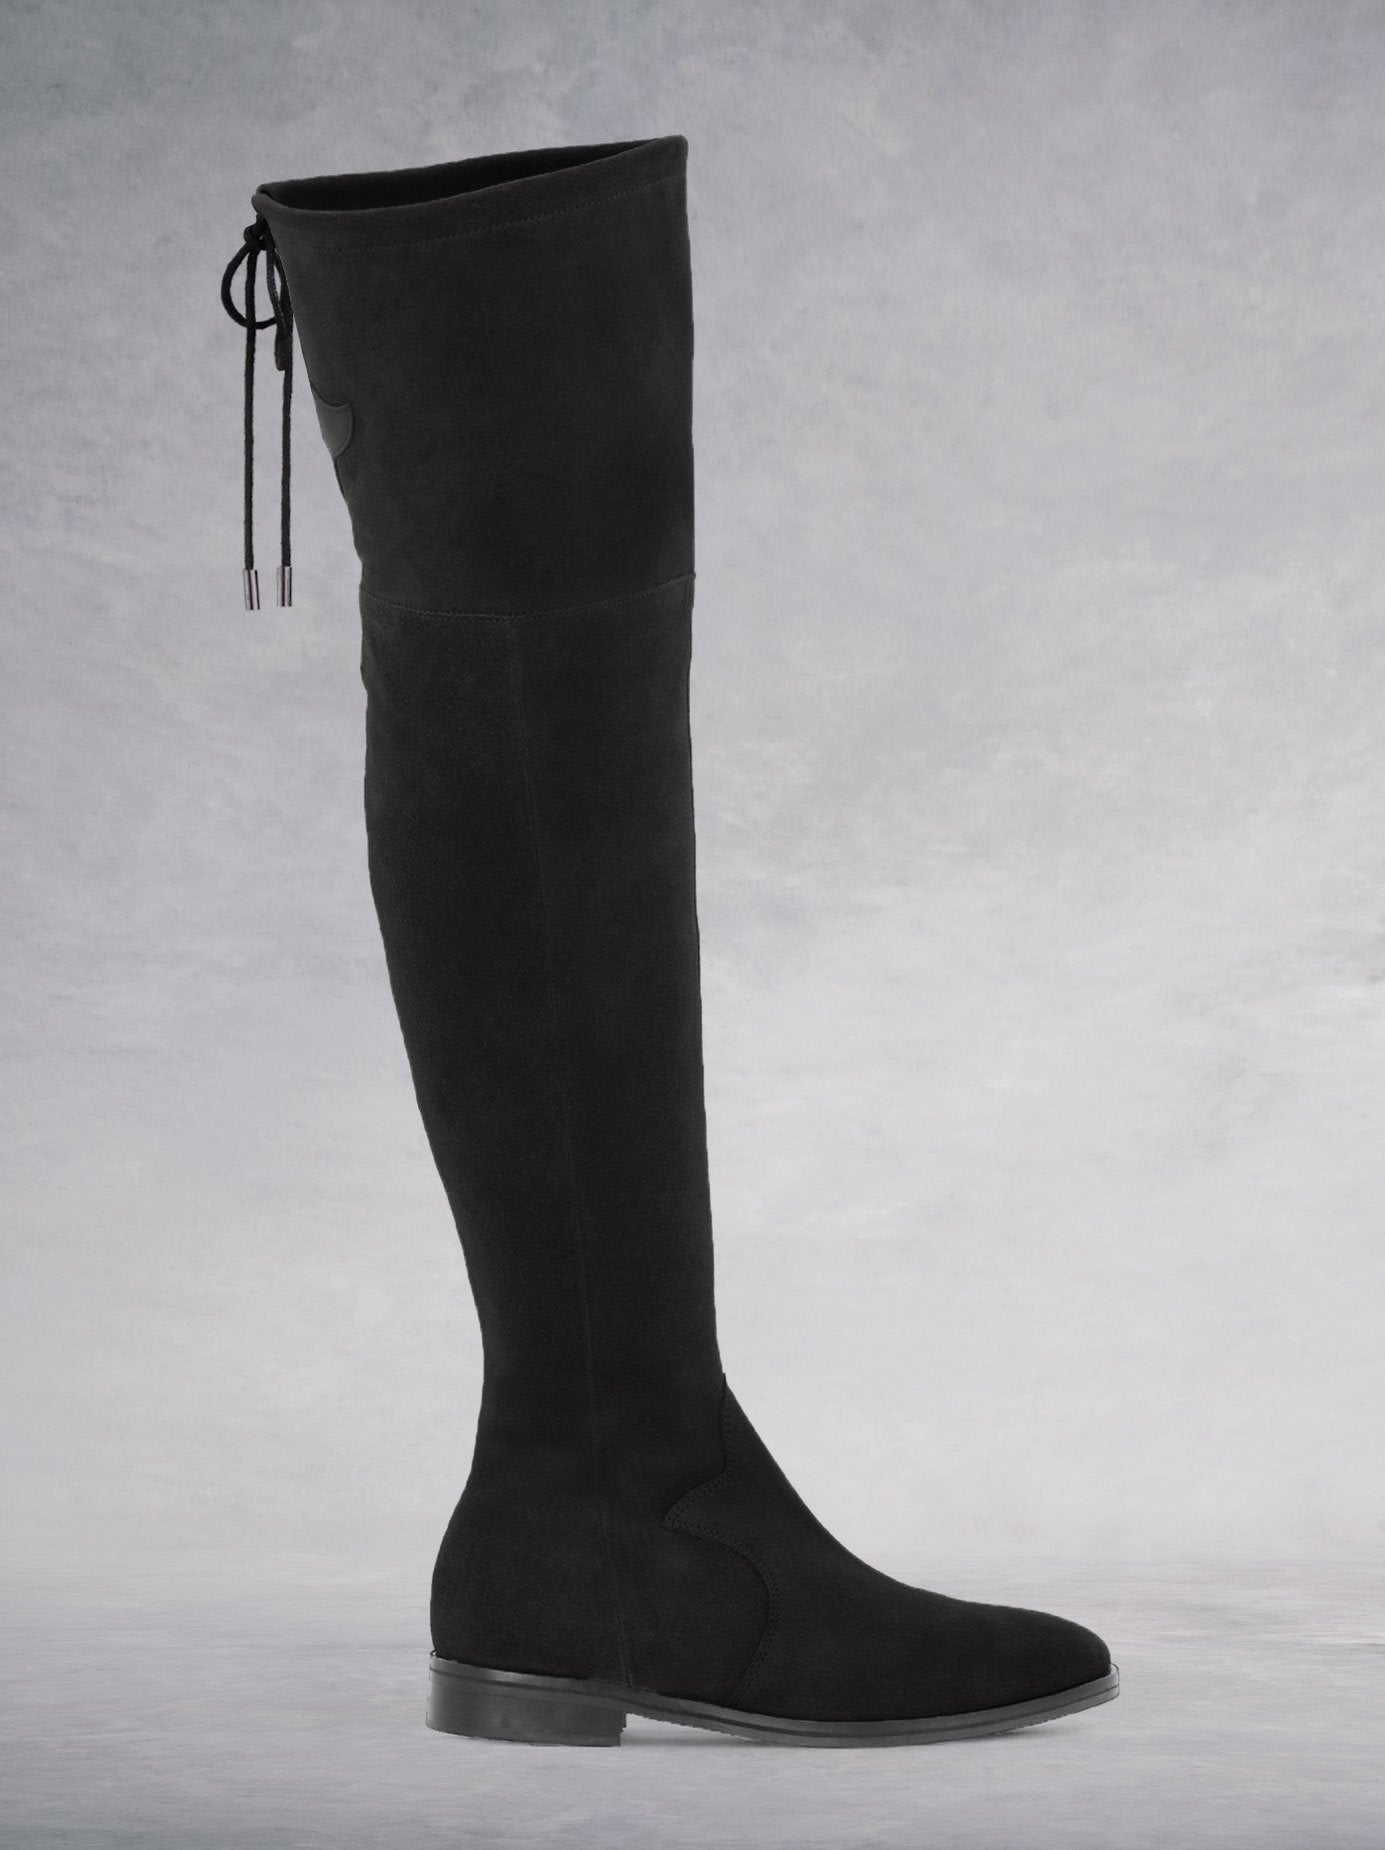 Fuller Black Suede - Over-the-knee boots with thick rubber sole.